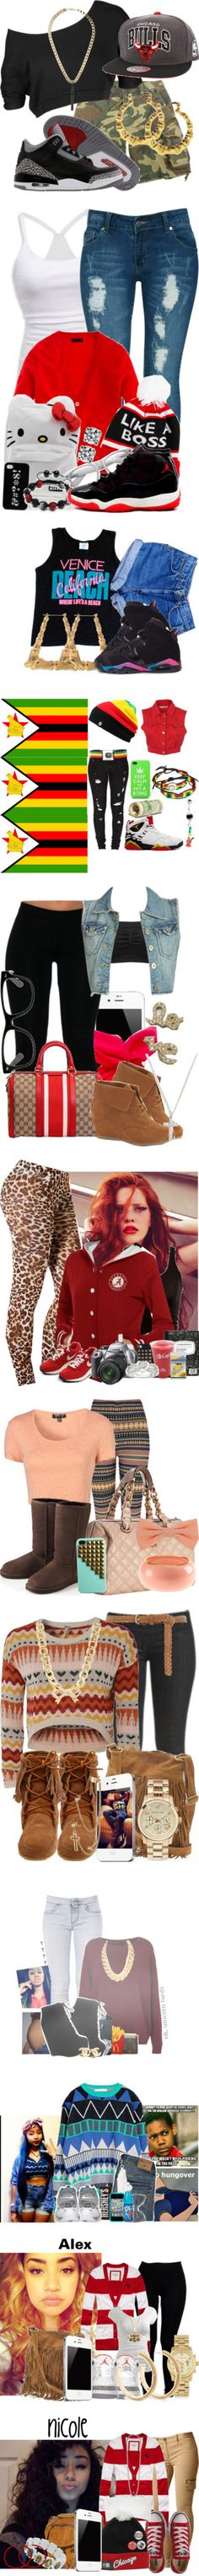 """""""Likes"""" by calichica ❤ liked on Polyvore"""